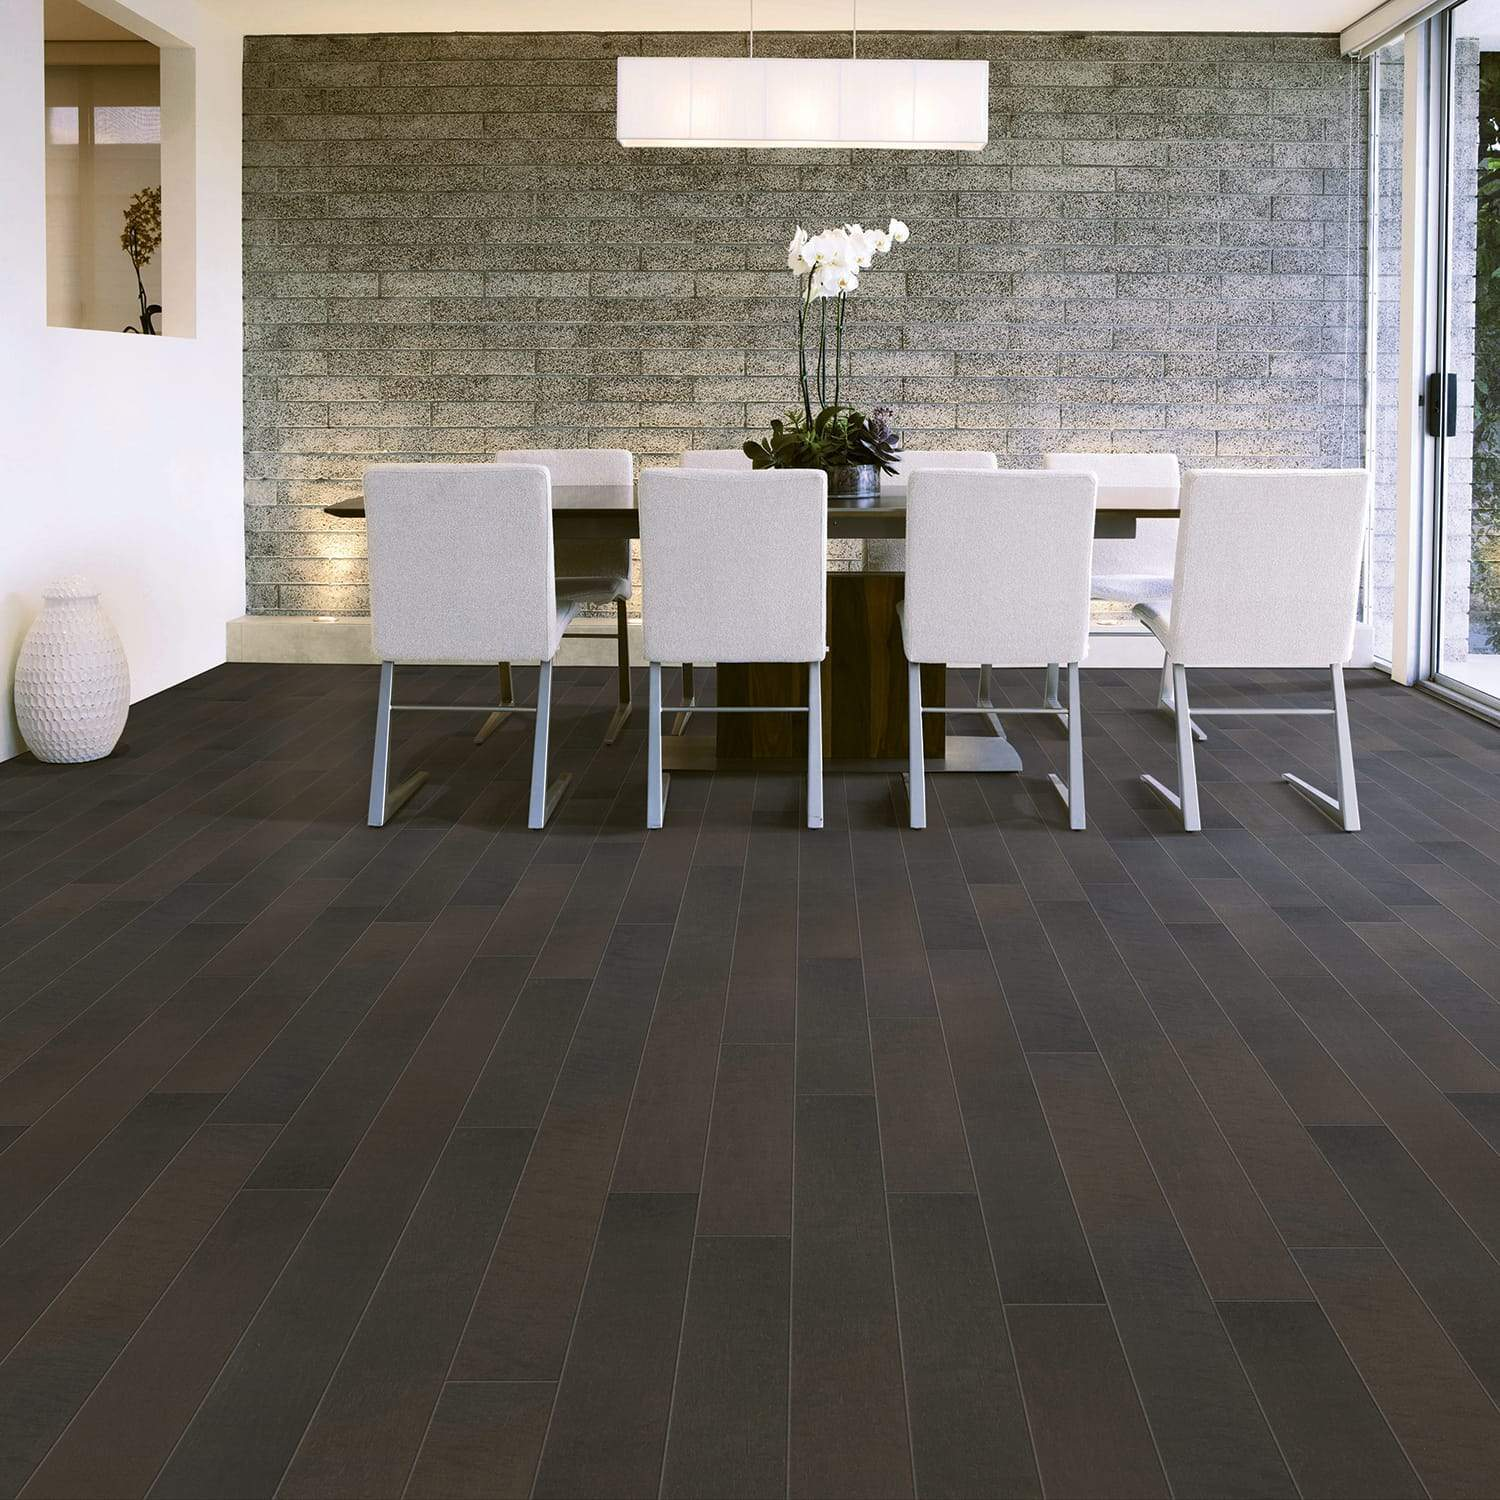 MH438 Americano Maple Molyneaux Tile Carpet Wood